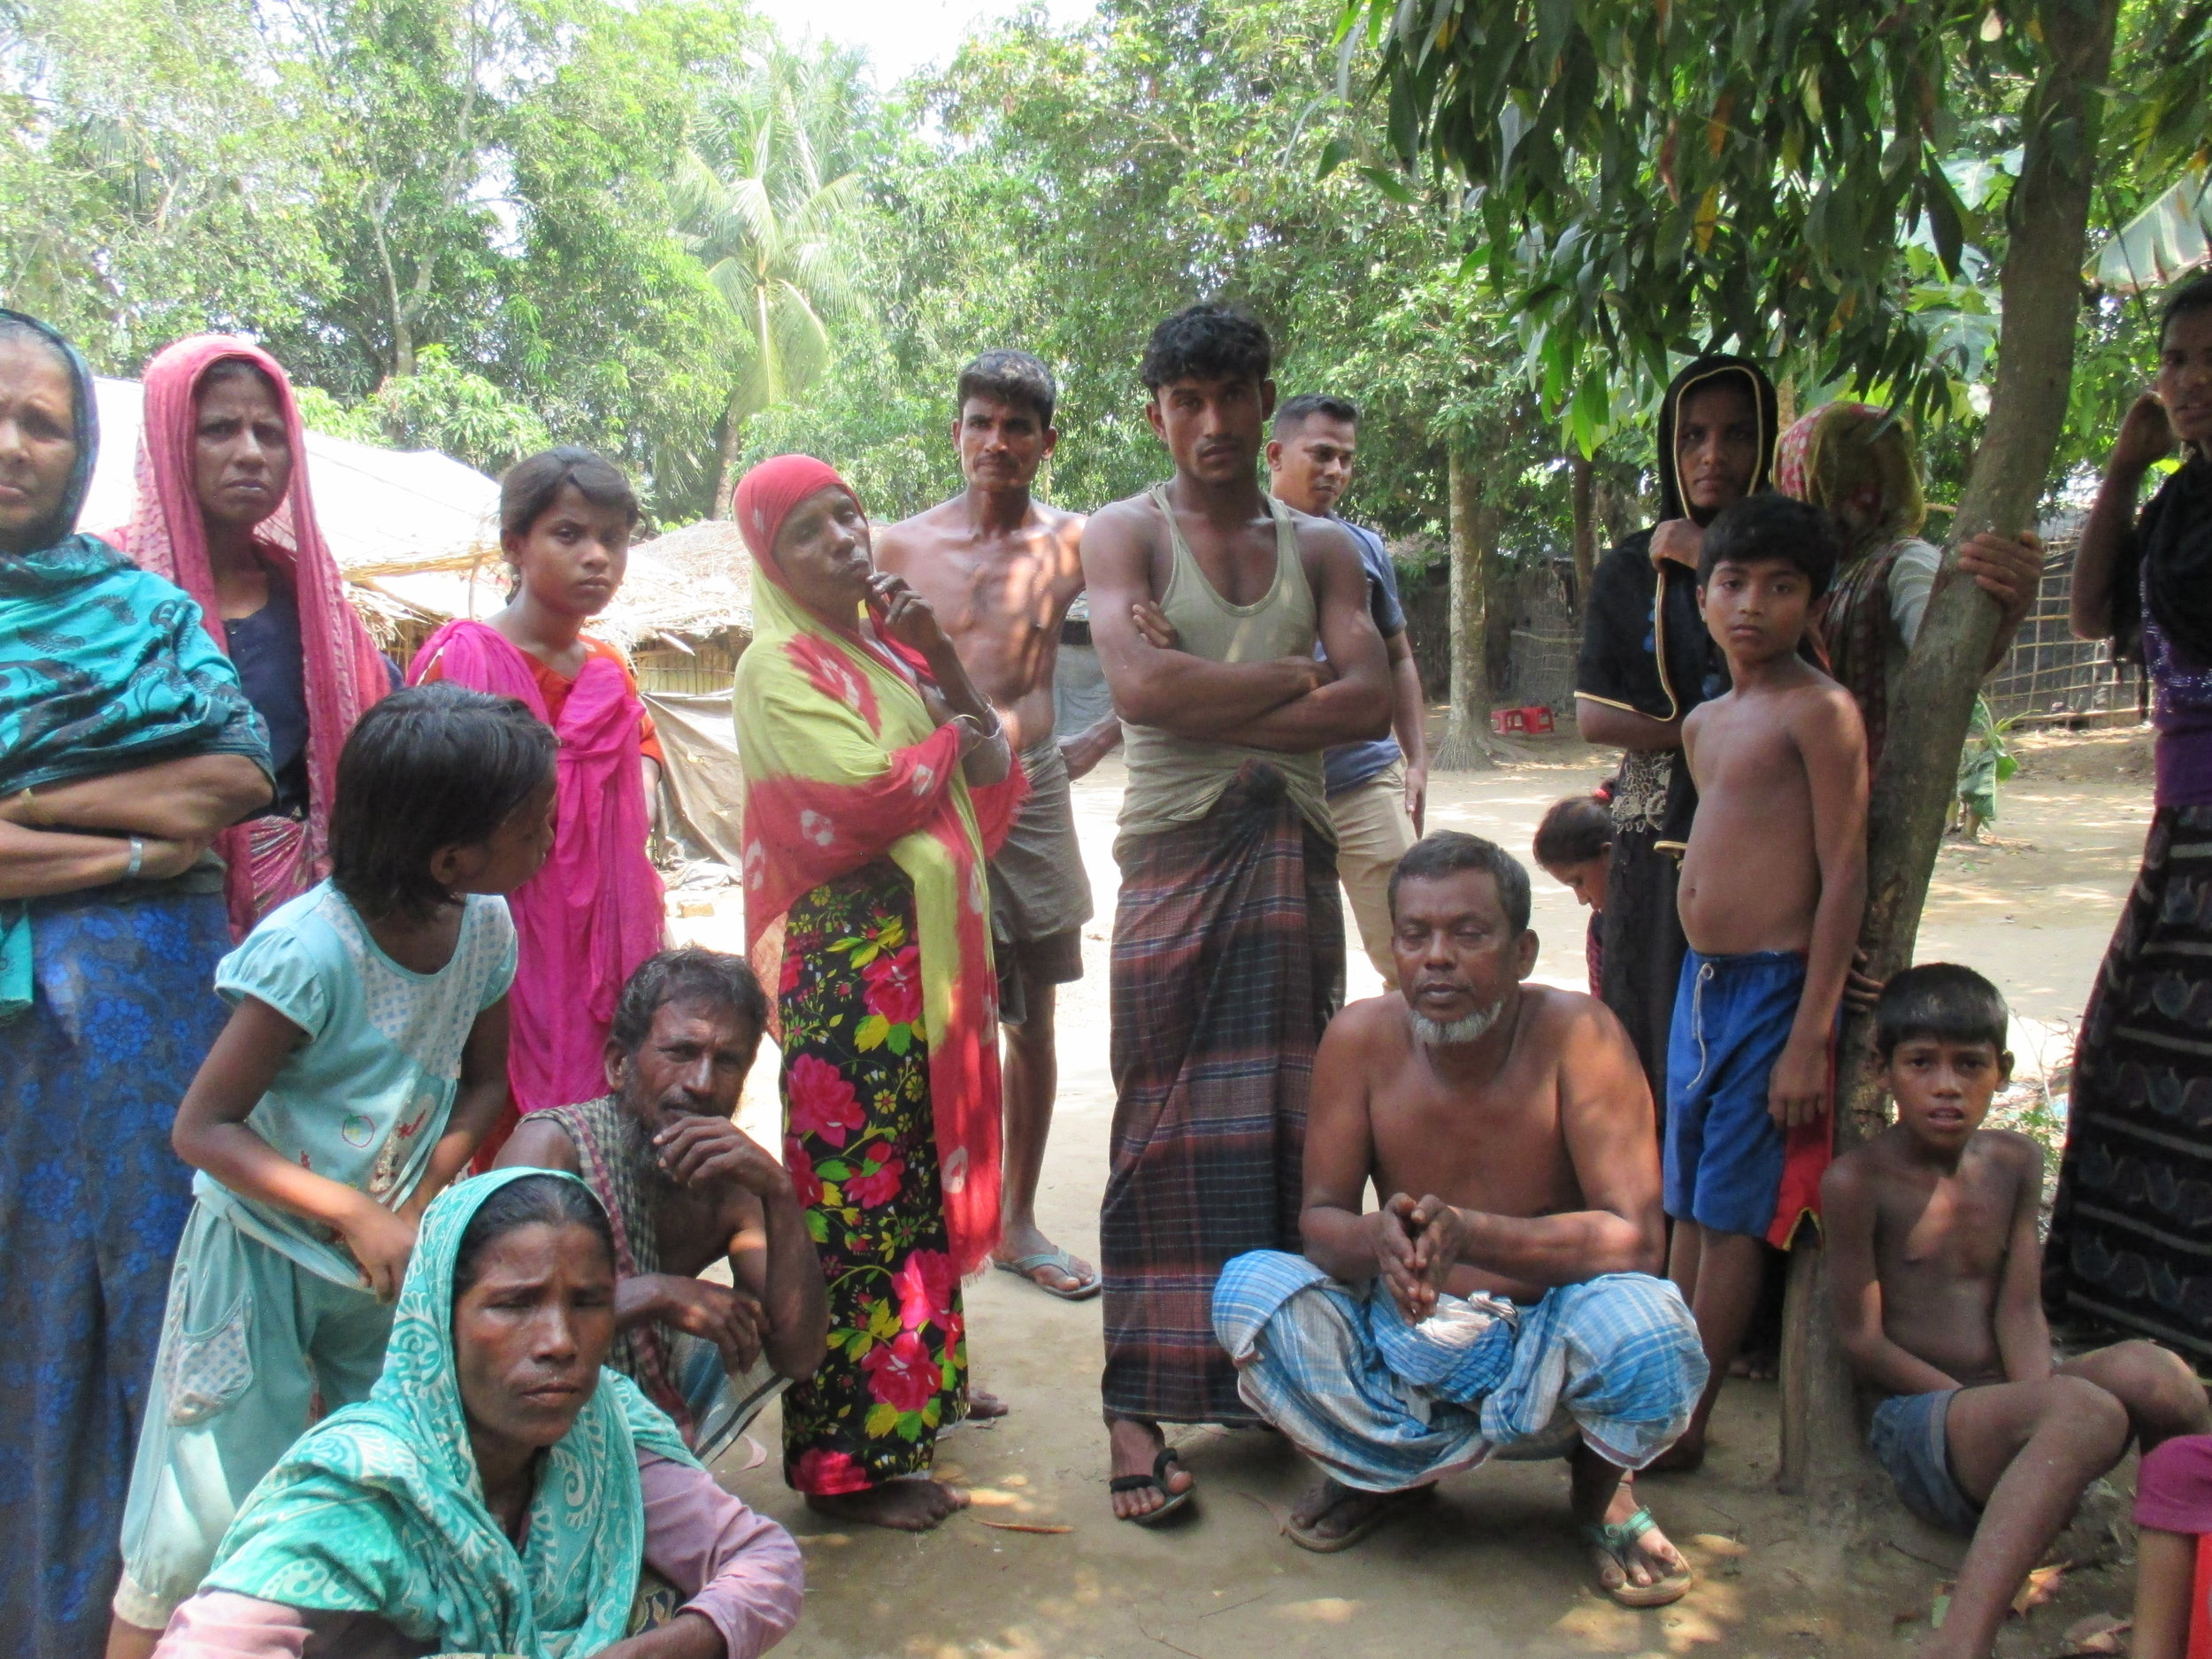 RI spoke with dozens of Rohingya refugees in Bangladesh, hearing appeals for food, improved shelter, and ultimately, an intense desire to return safely to their homeland.